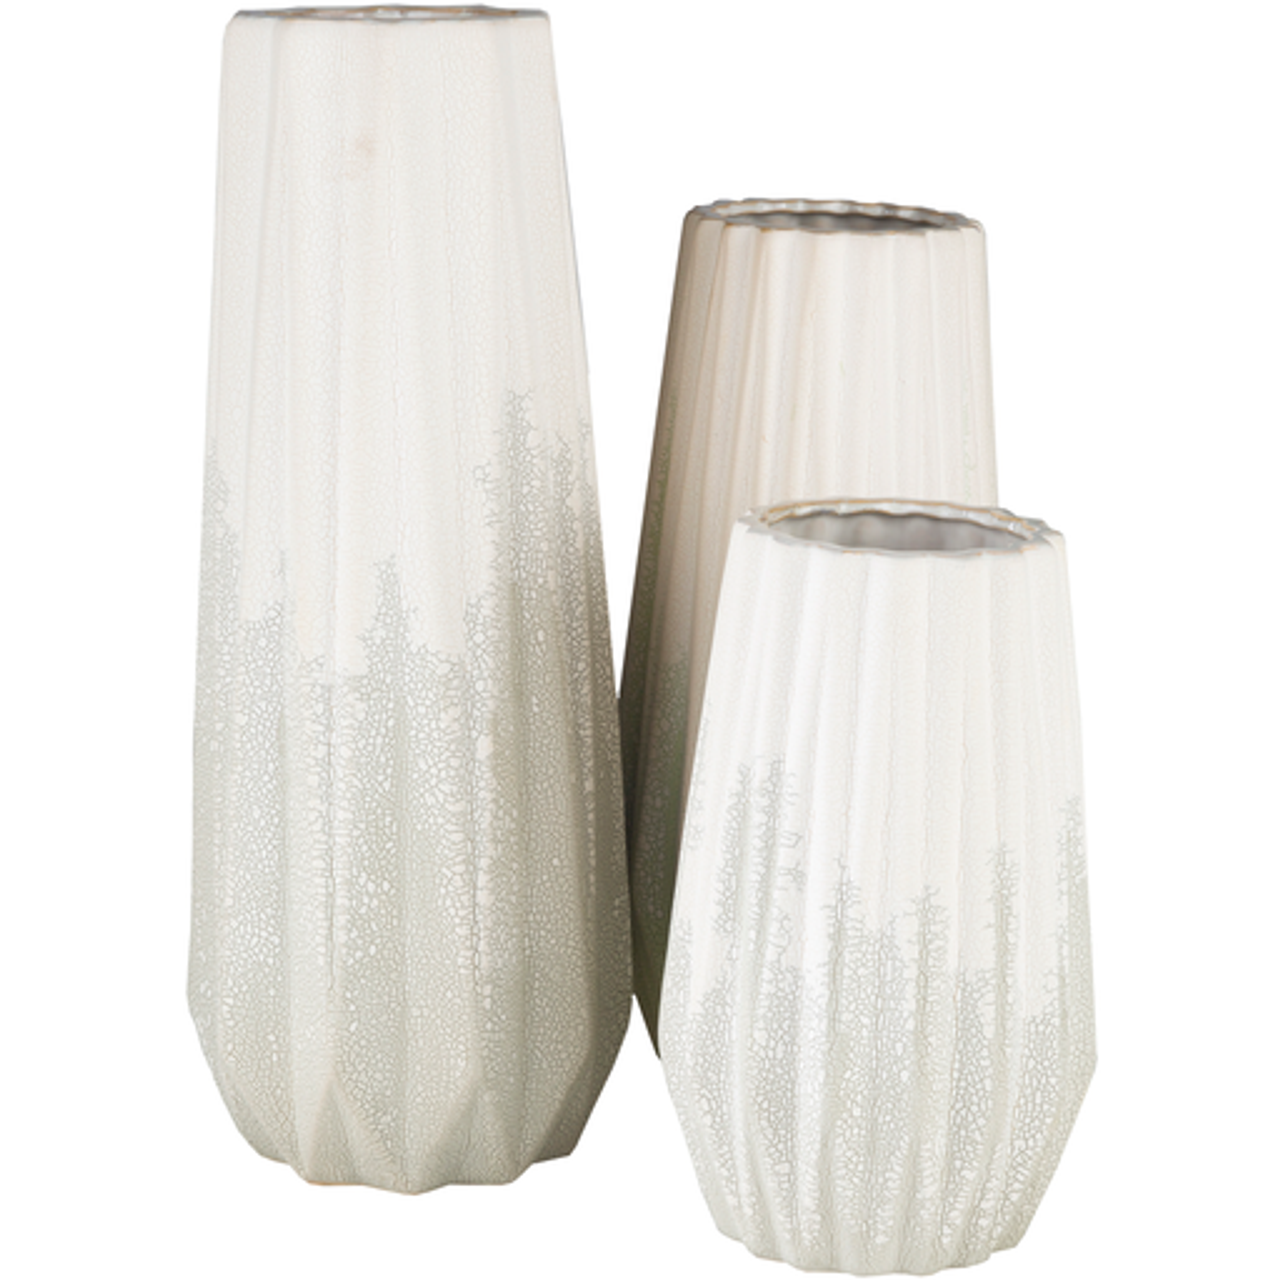 Colette Crackle Distressed White Vase